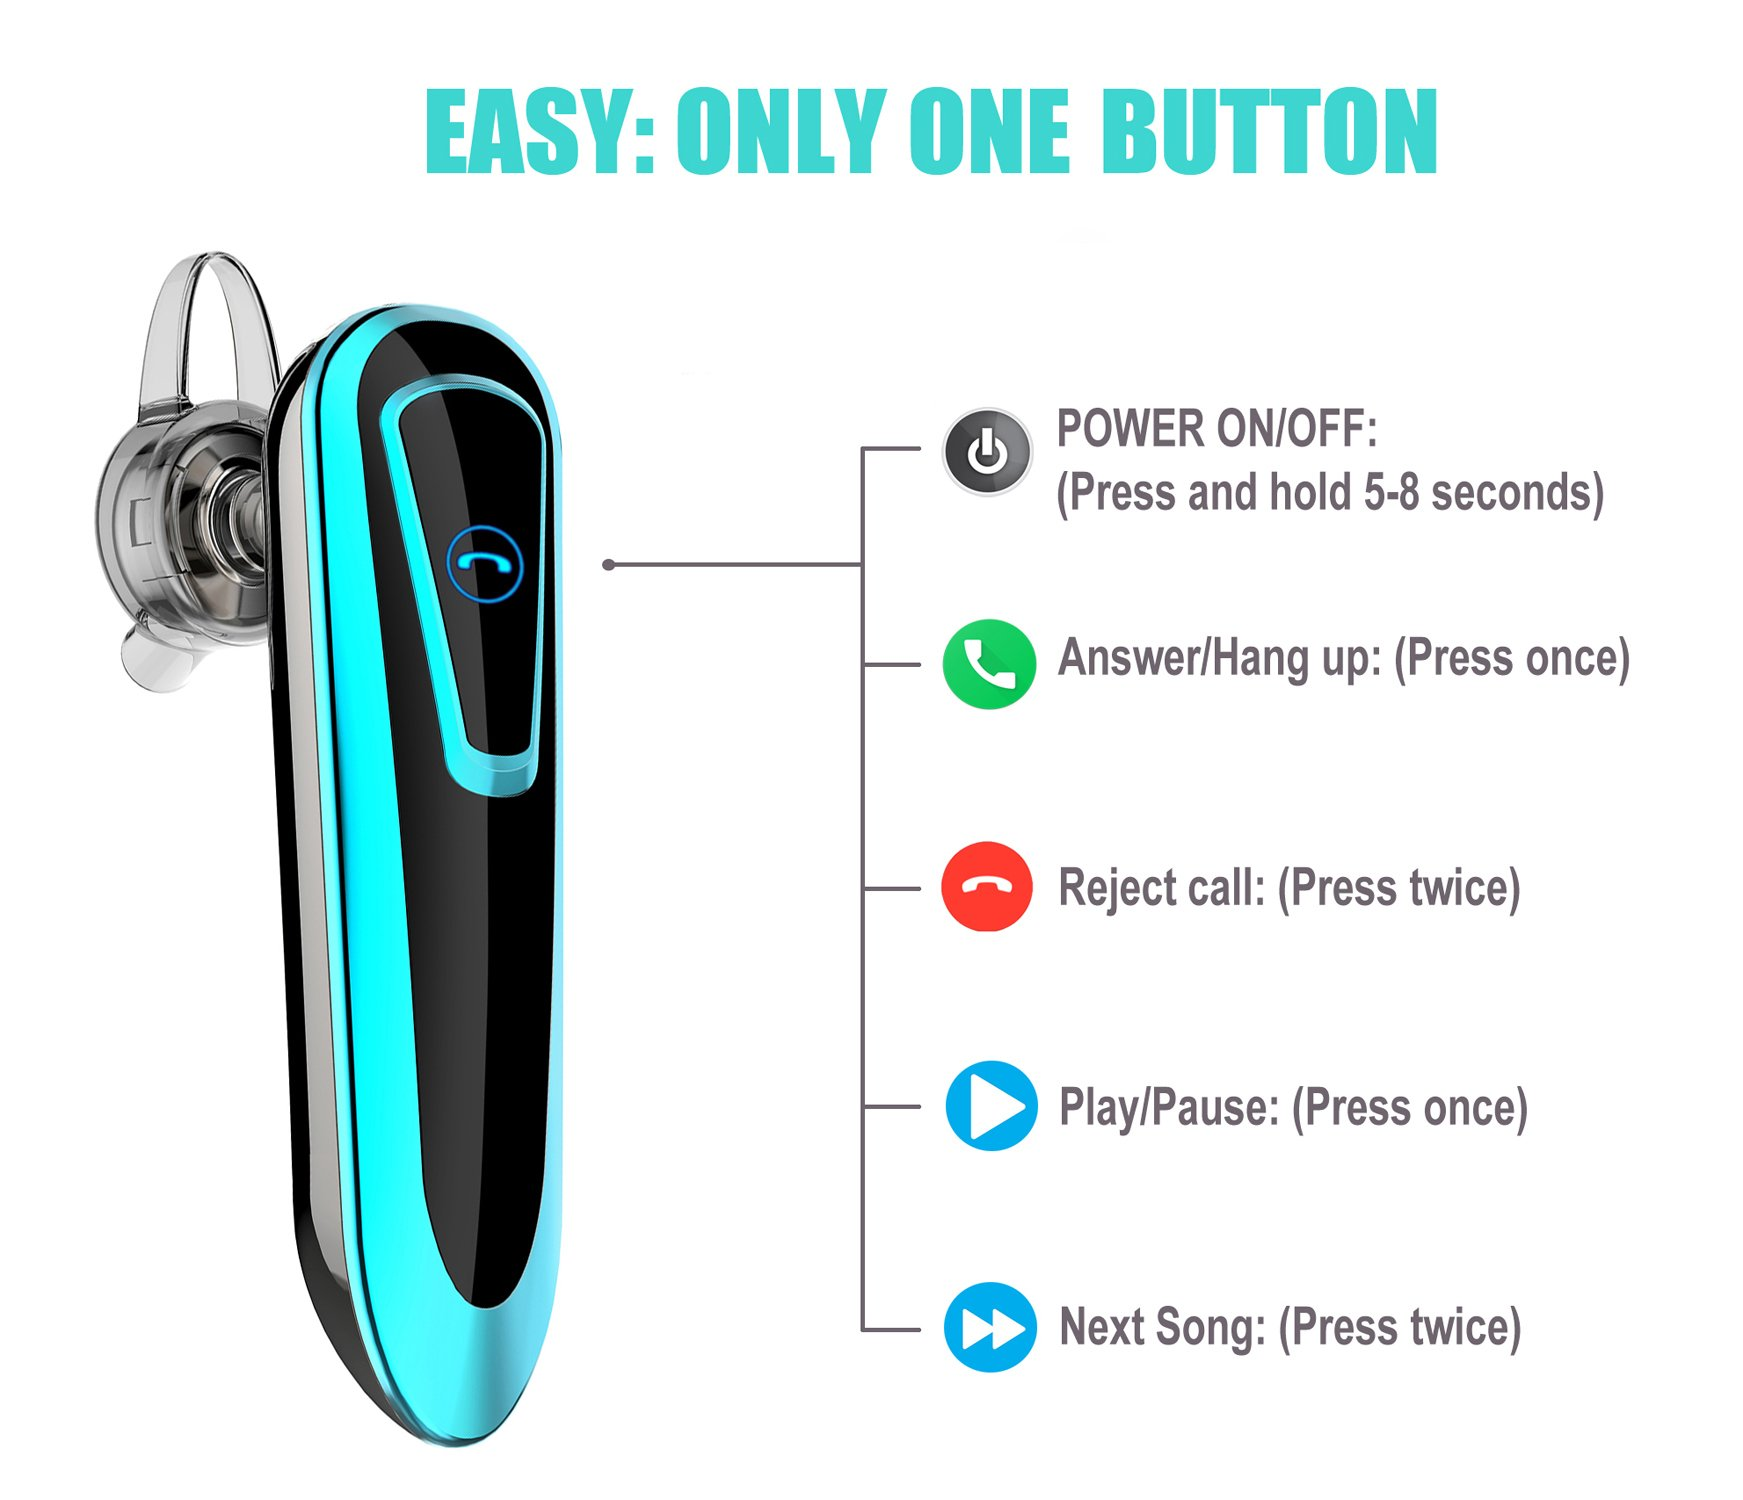 Bluetooth Earpiece Headsets for Safety Drive and Office Business, Car Speakerphone Handsfree, 24hour Long Battery Playtime Earbuds, In Ear Headphones with Microphone Noise Cancelling for Taxi Uber by BilmiX (Image #6)